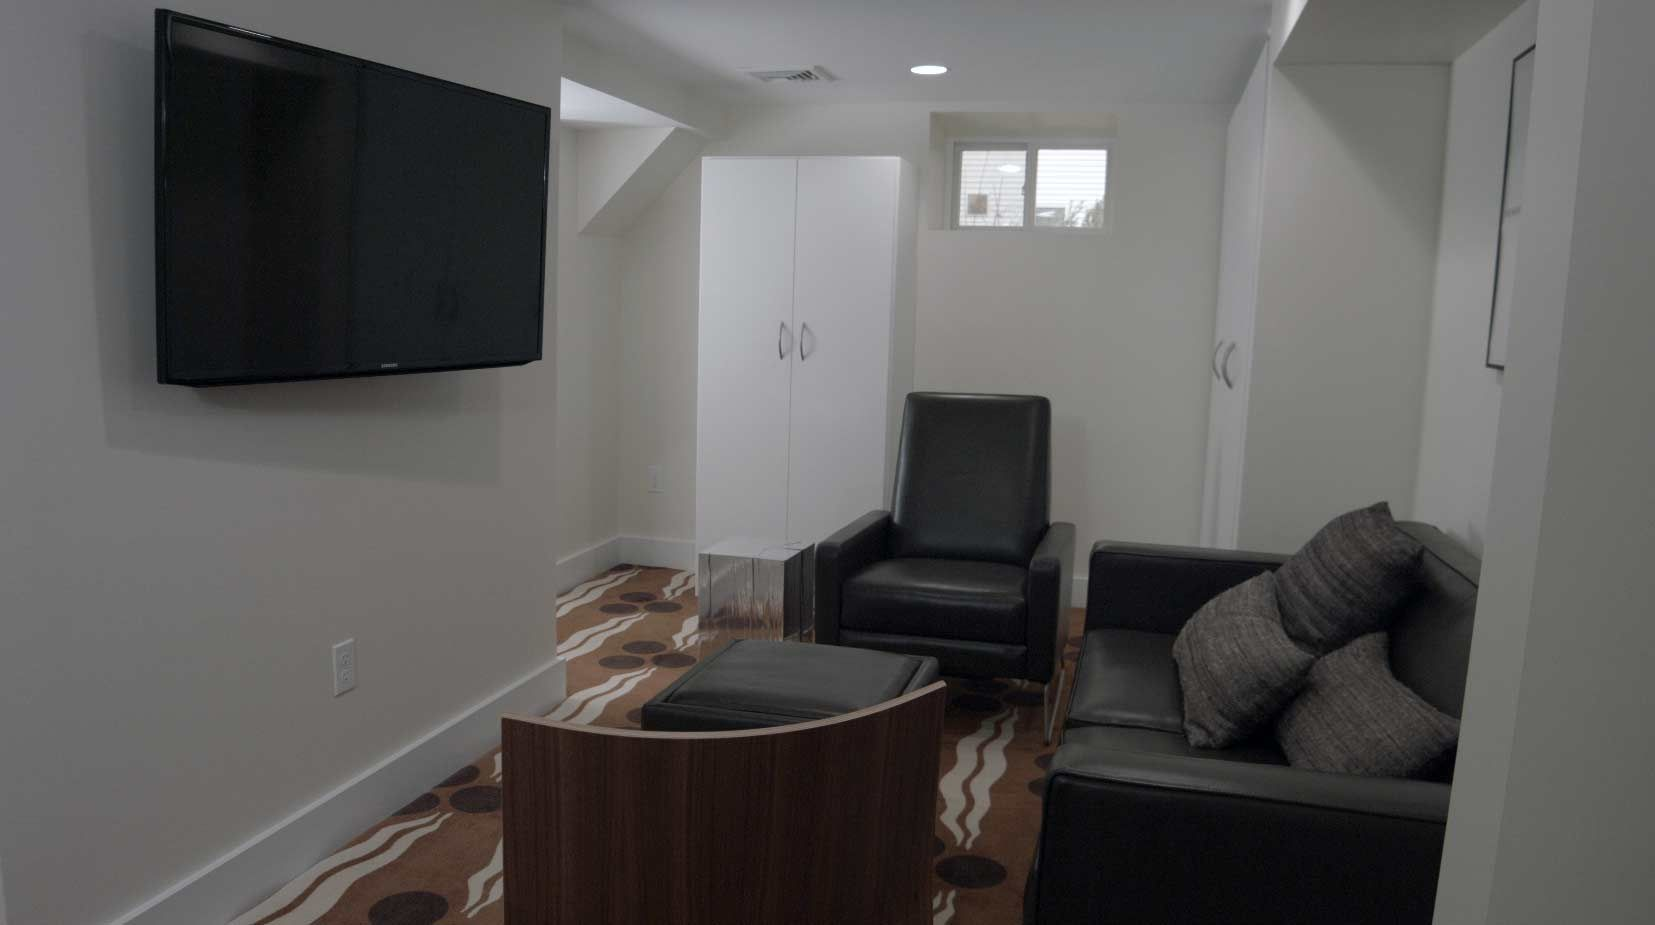 The TV area has comfortable seating and big screen TV, as well as room for the kids to play. @george2rescue